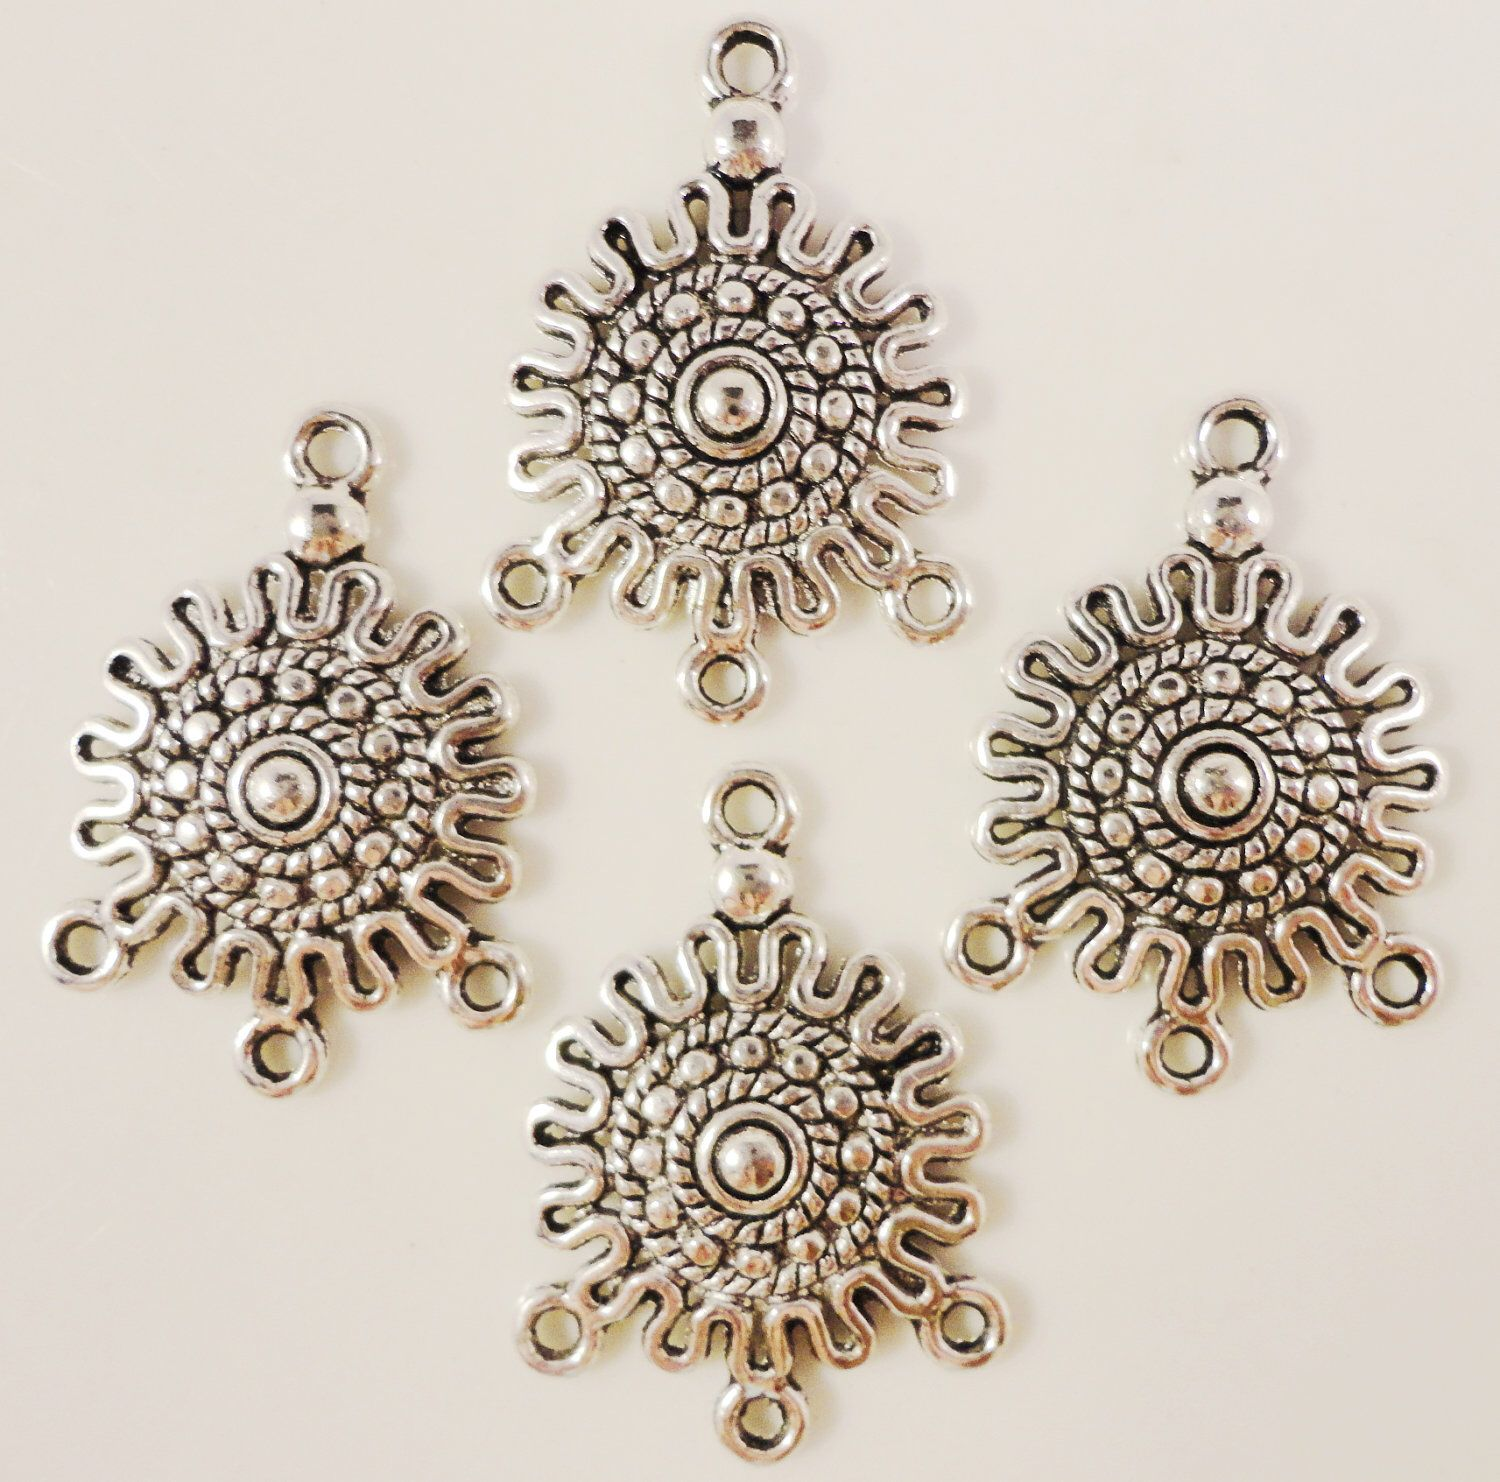 Chandelier earring findings 26x19mm antique silver tone metal chandelier earring findings 26x19mm antique silver tone metal earring connector lead free jewelry making jewelry findings 3 pairs 6pcs arubaitofo Image collections